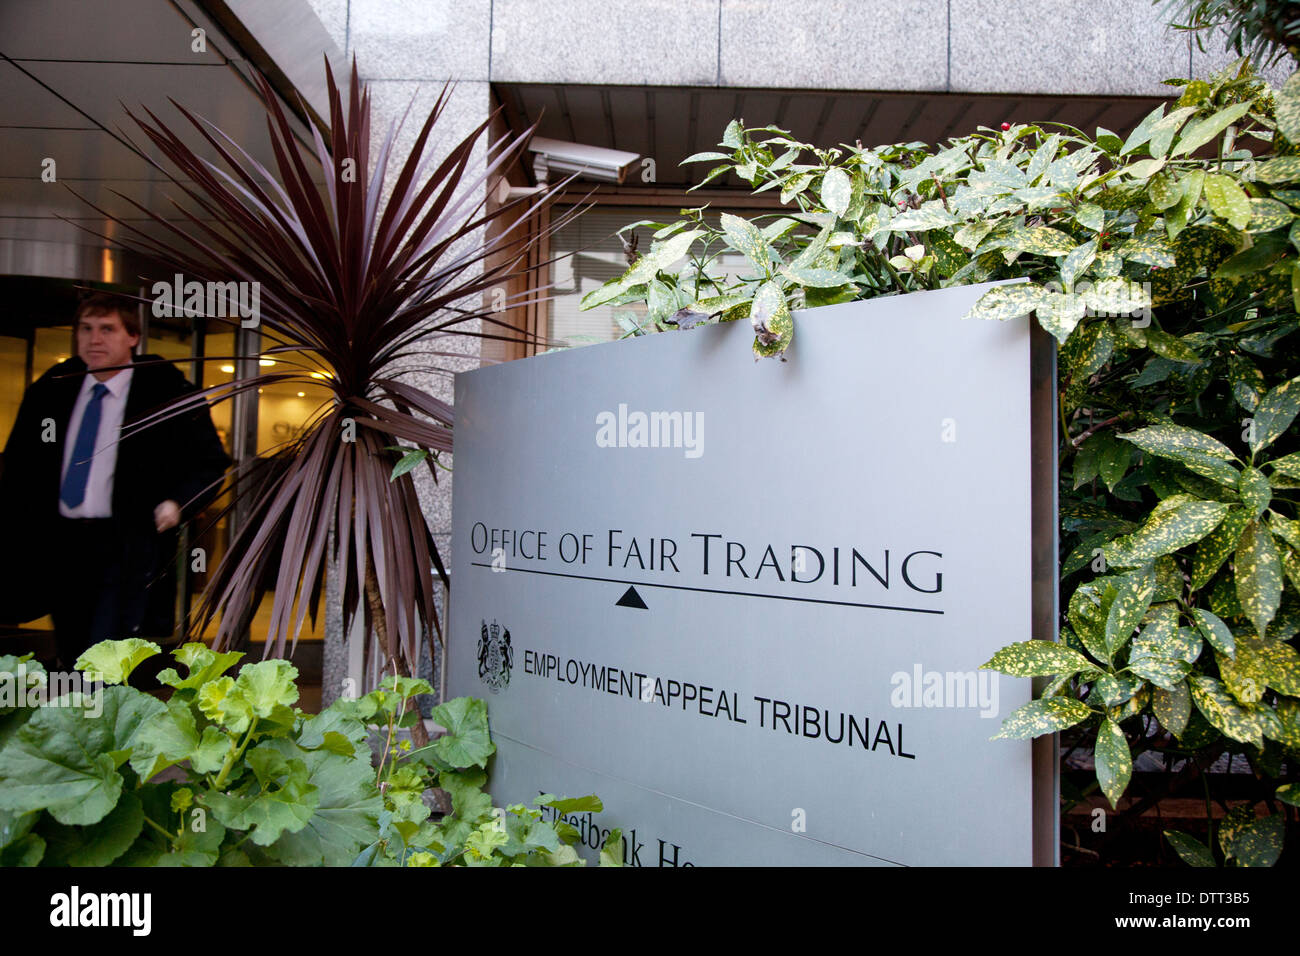 Office of Fair Trading and Employment Appeal Tribunal, London - Stock Image